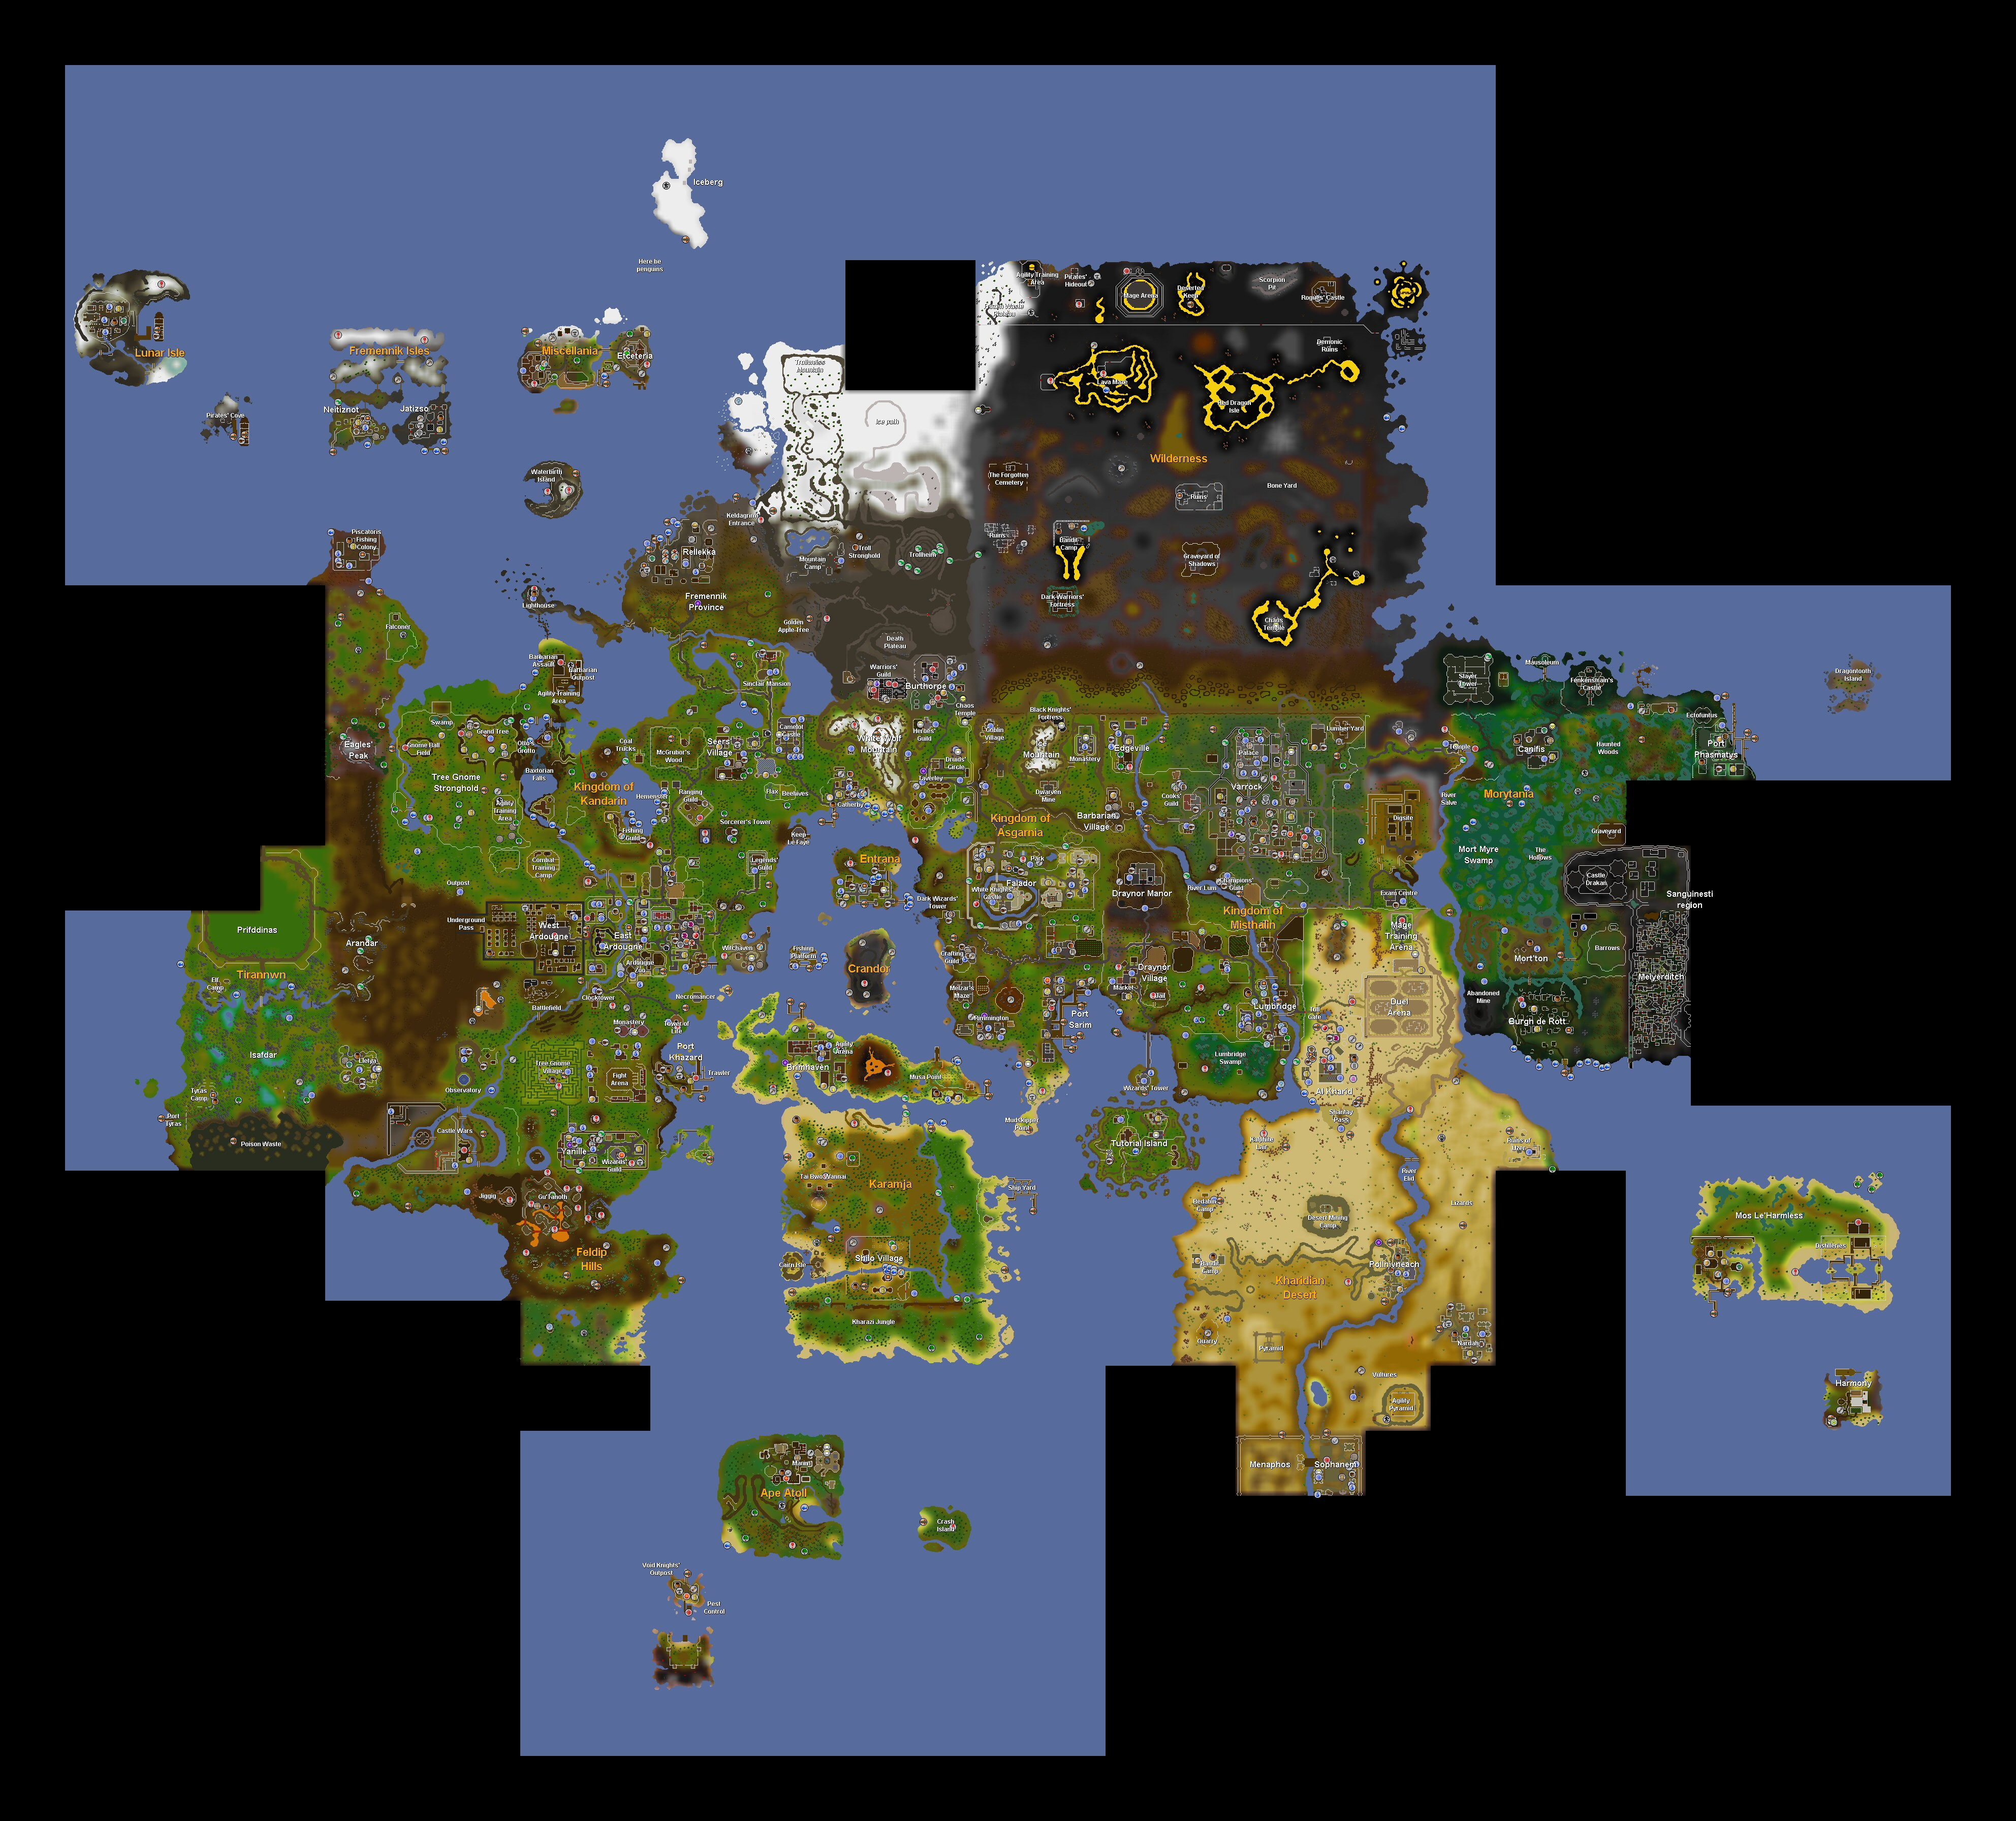 World maphistory runescape wiki fandom powered by wikia publicscrutiny Image collections